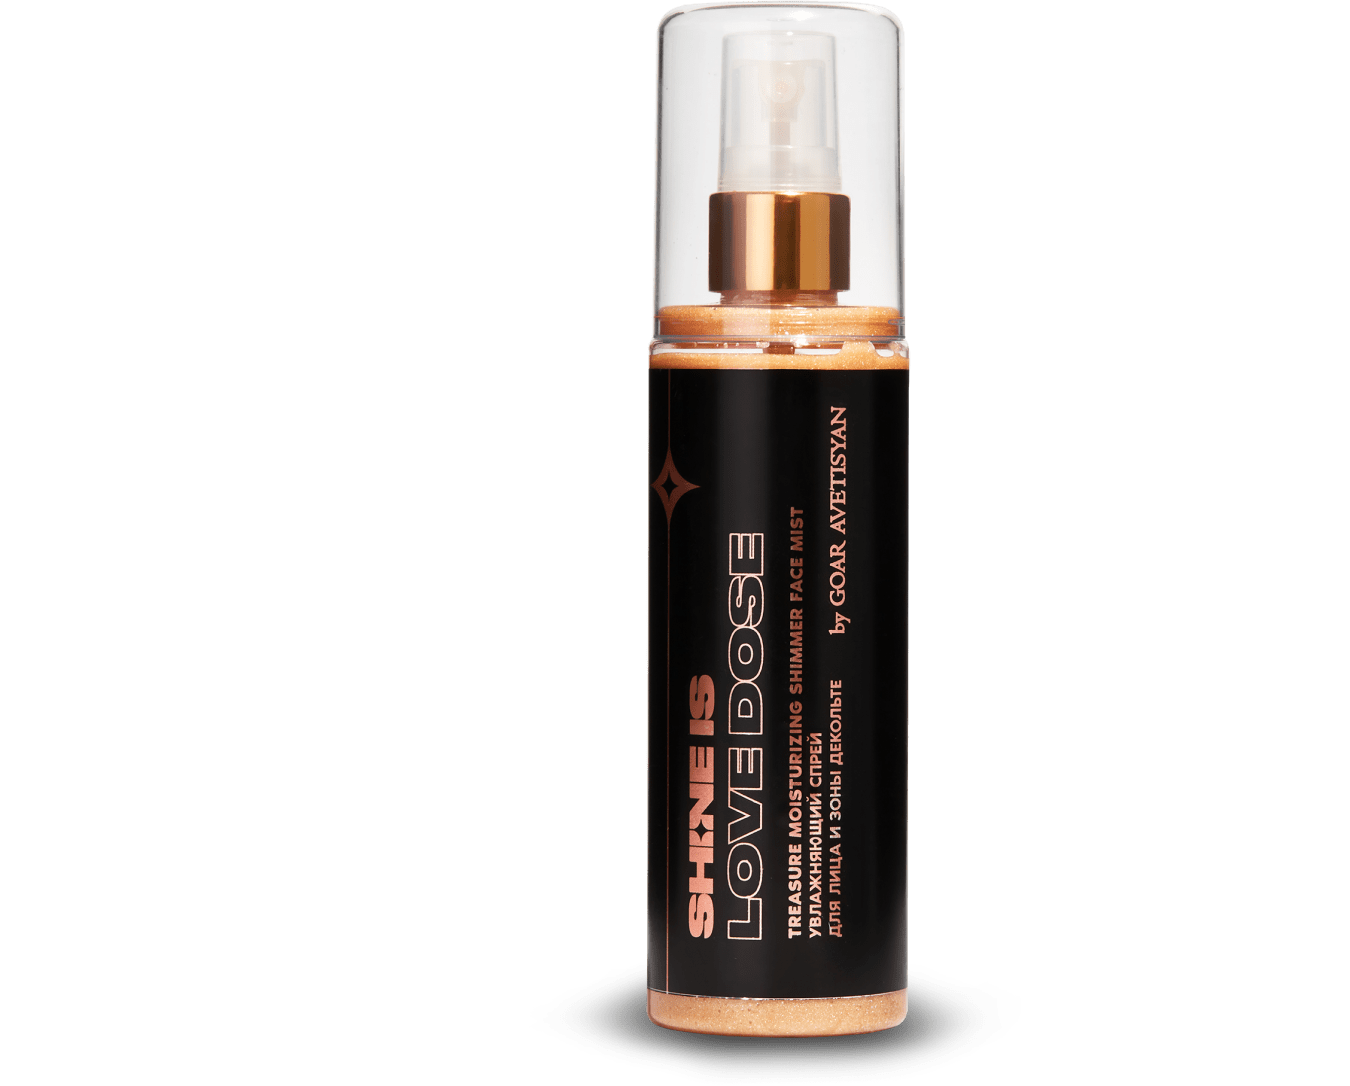 Treasure Moisturizing Shimmer Face Mist